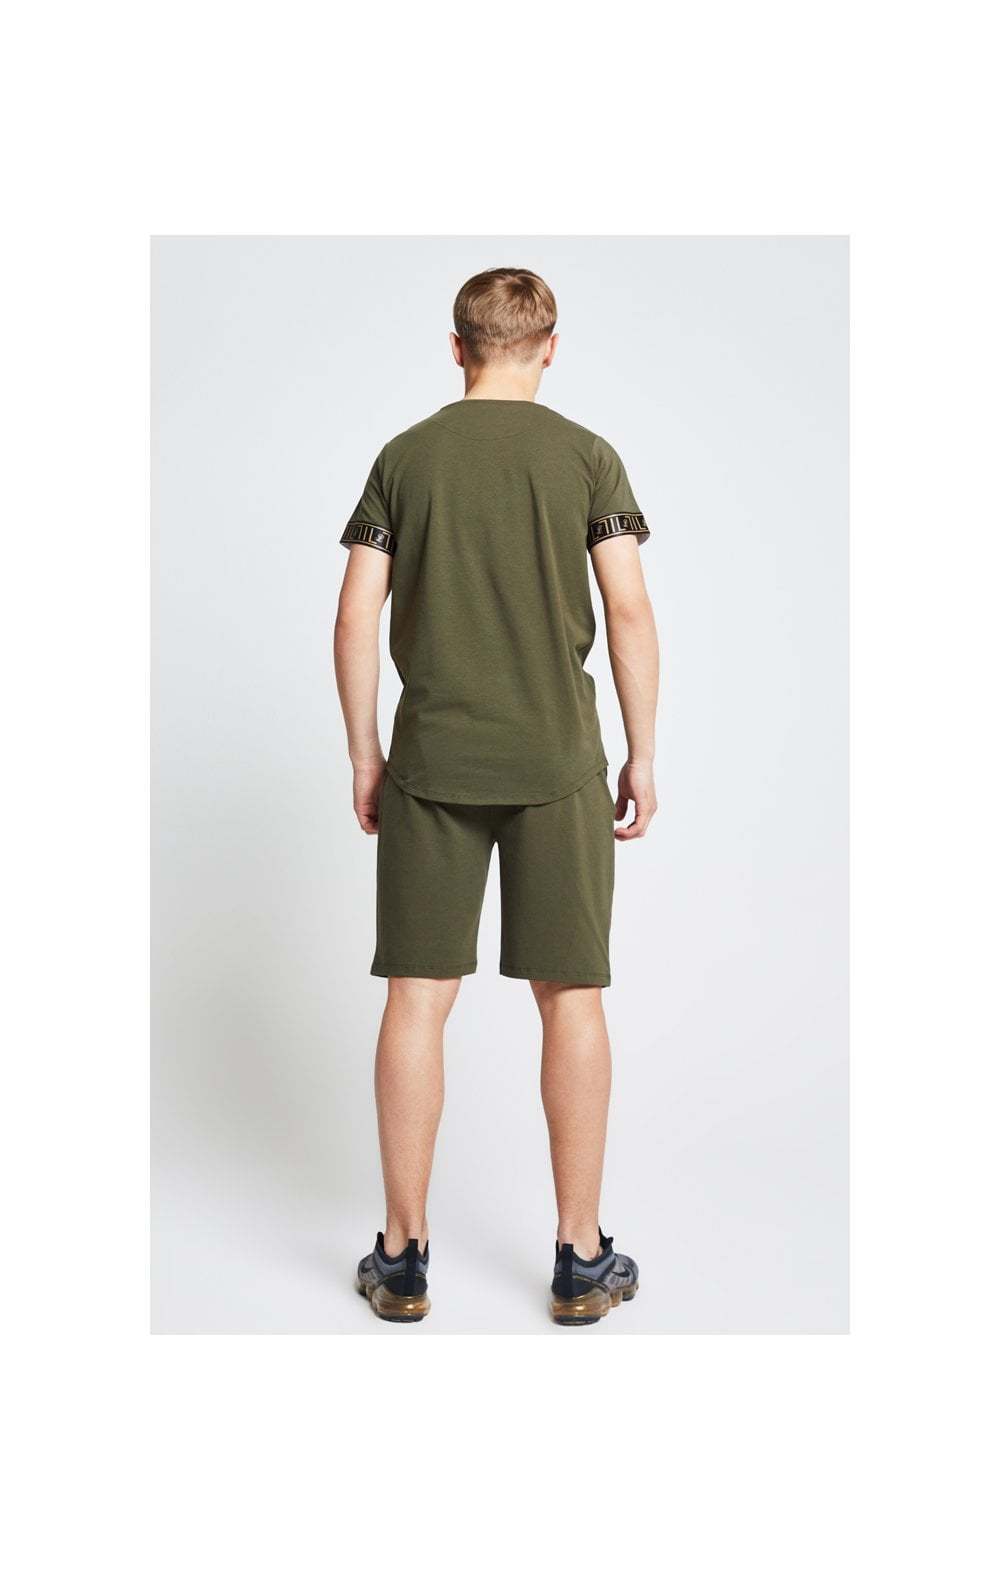 Illusive London Shorts Jersey mit Zierband - Khaki (5)